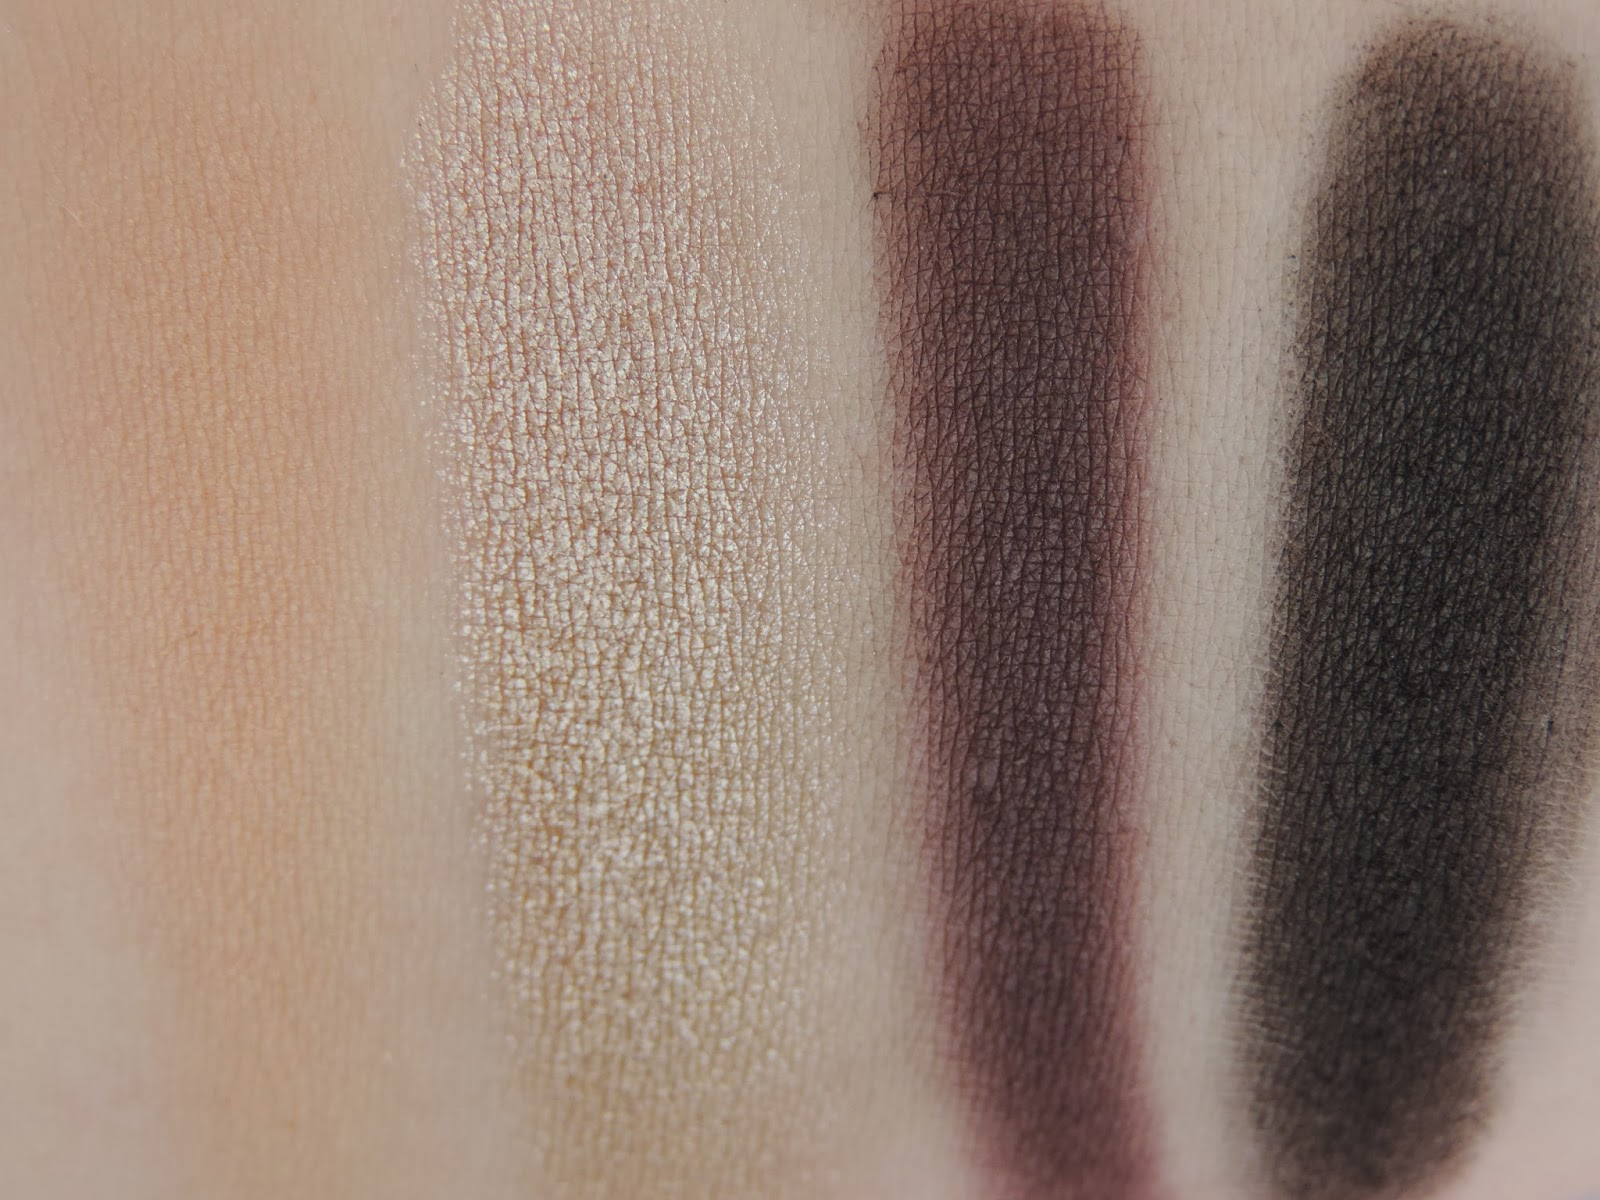 Swatches from left: Toast (heavy), Taupe, Regal, Noir